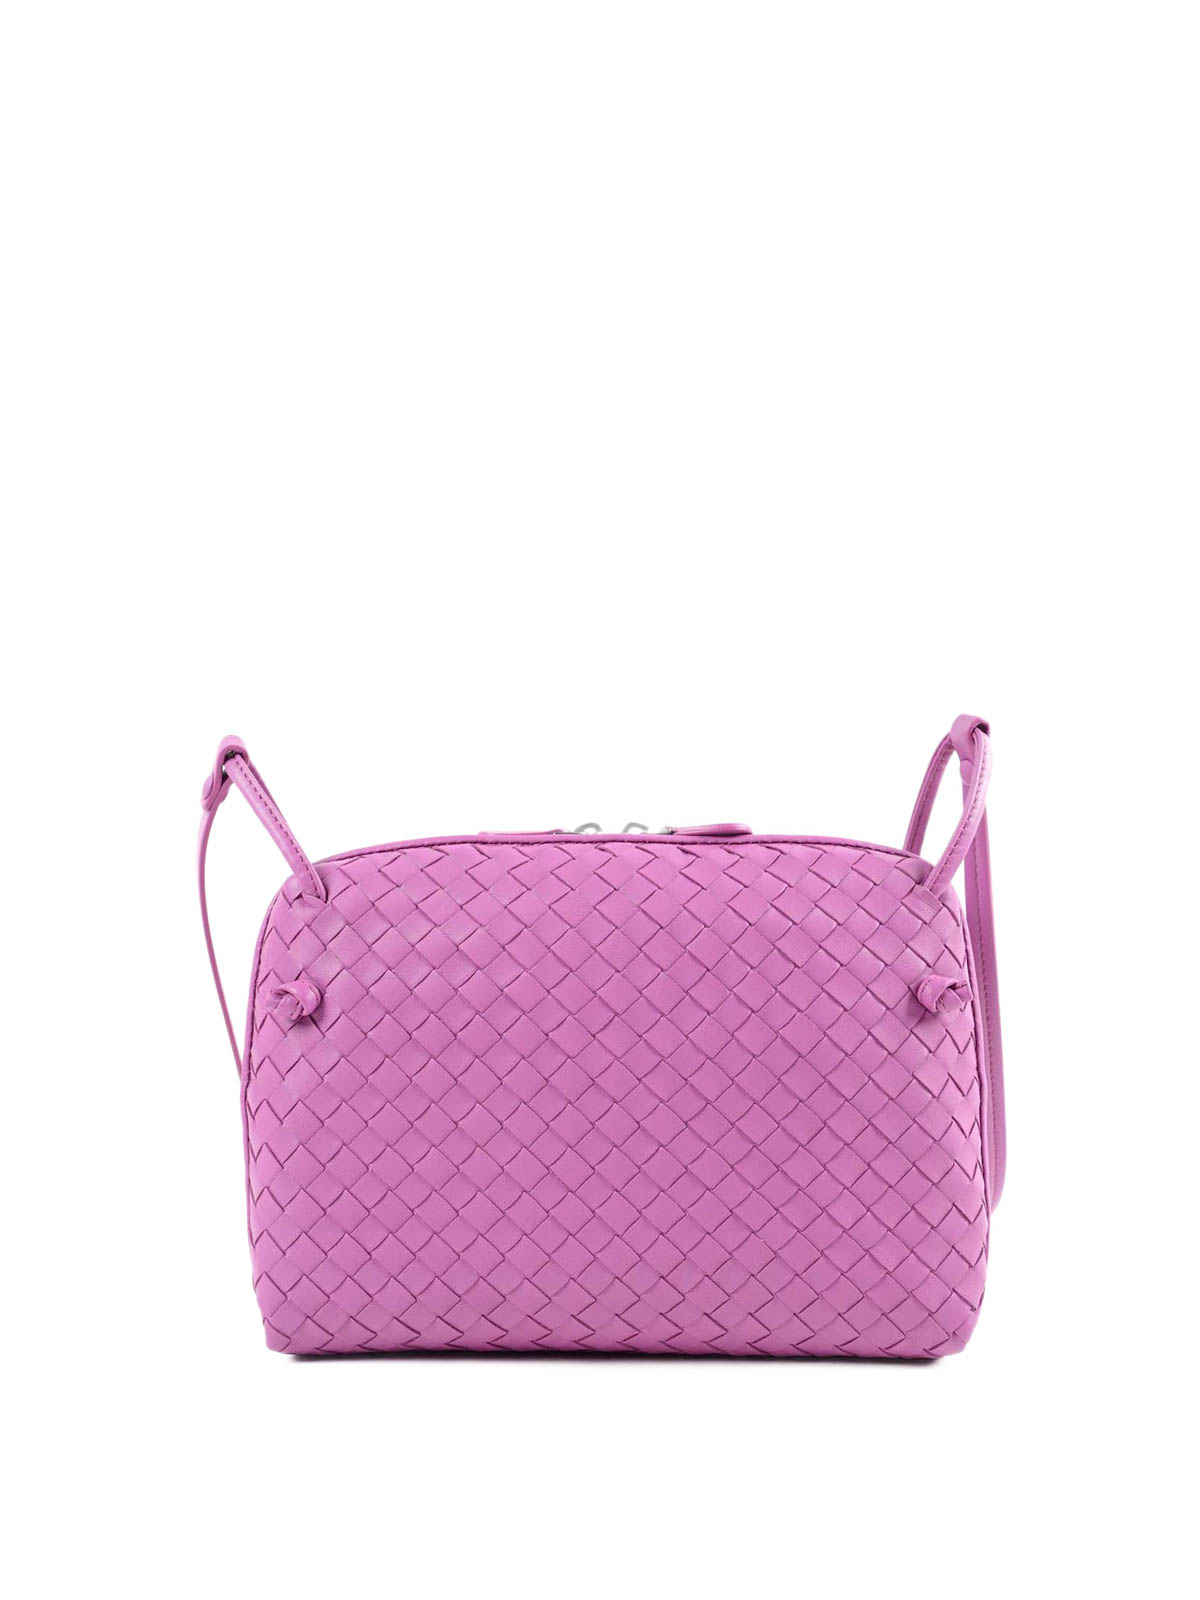 Bottega Veneta - Woven nappa cross body bag - cross body bags ... adedb2a184e1c